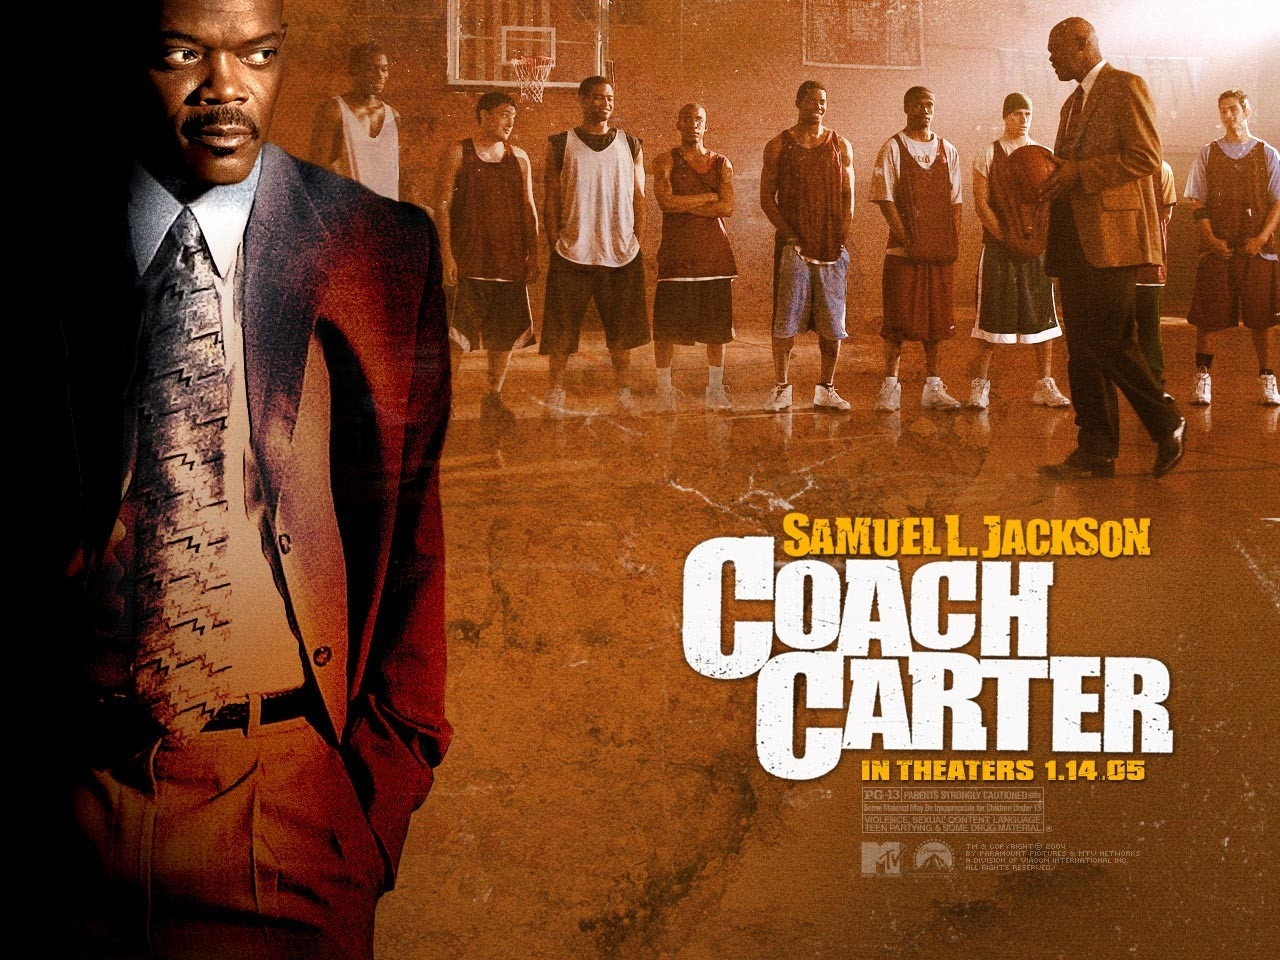 Wallpaper del film Coach Carter con Samuel L.Jackson